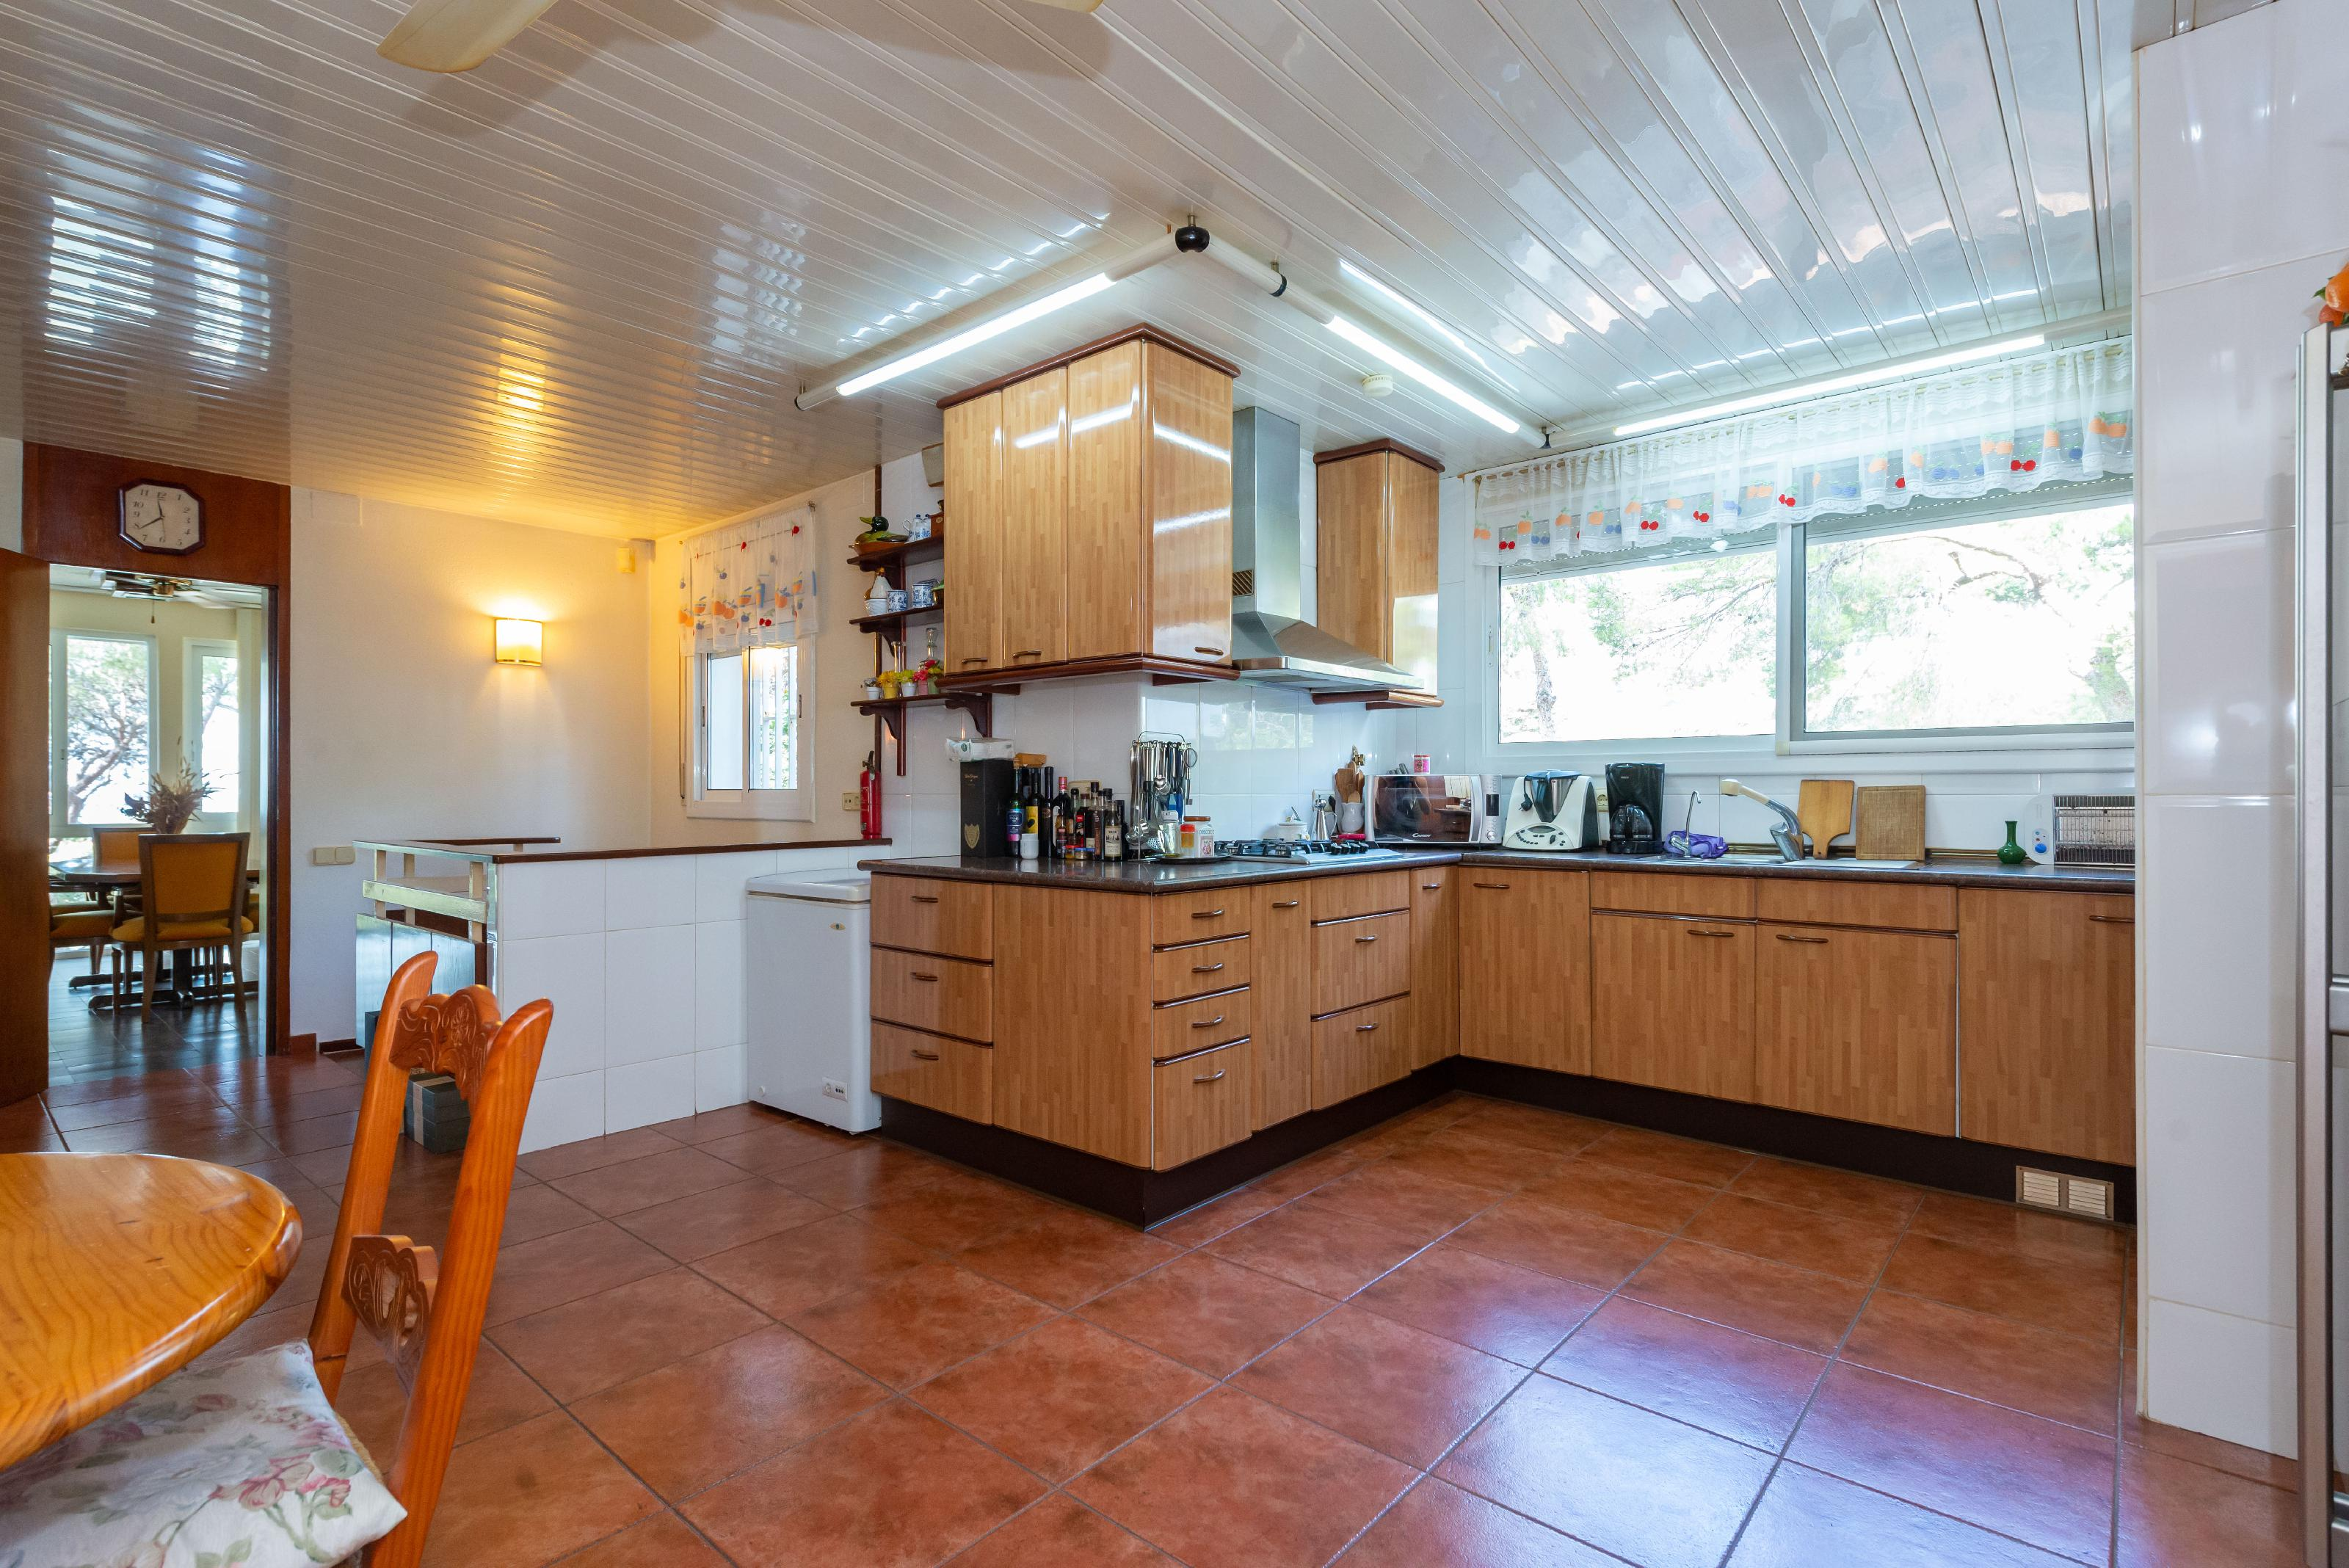 253501 Detached House for sale in Bellamar 18